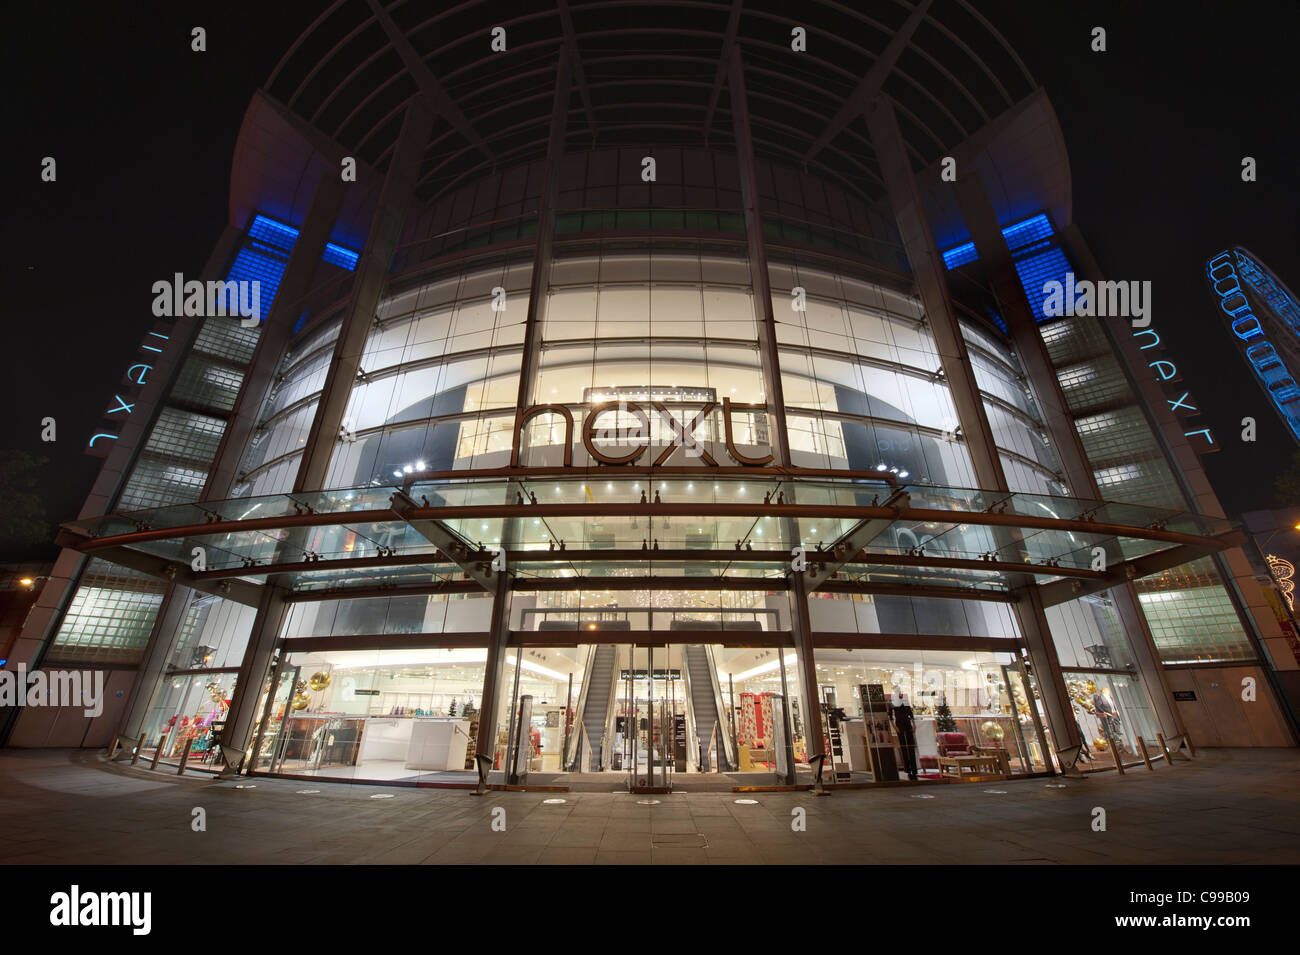 A night time shot of the entrance / storefront to the Next flagship store in Manchester with no people (Editorial - Stock Image